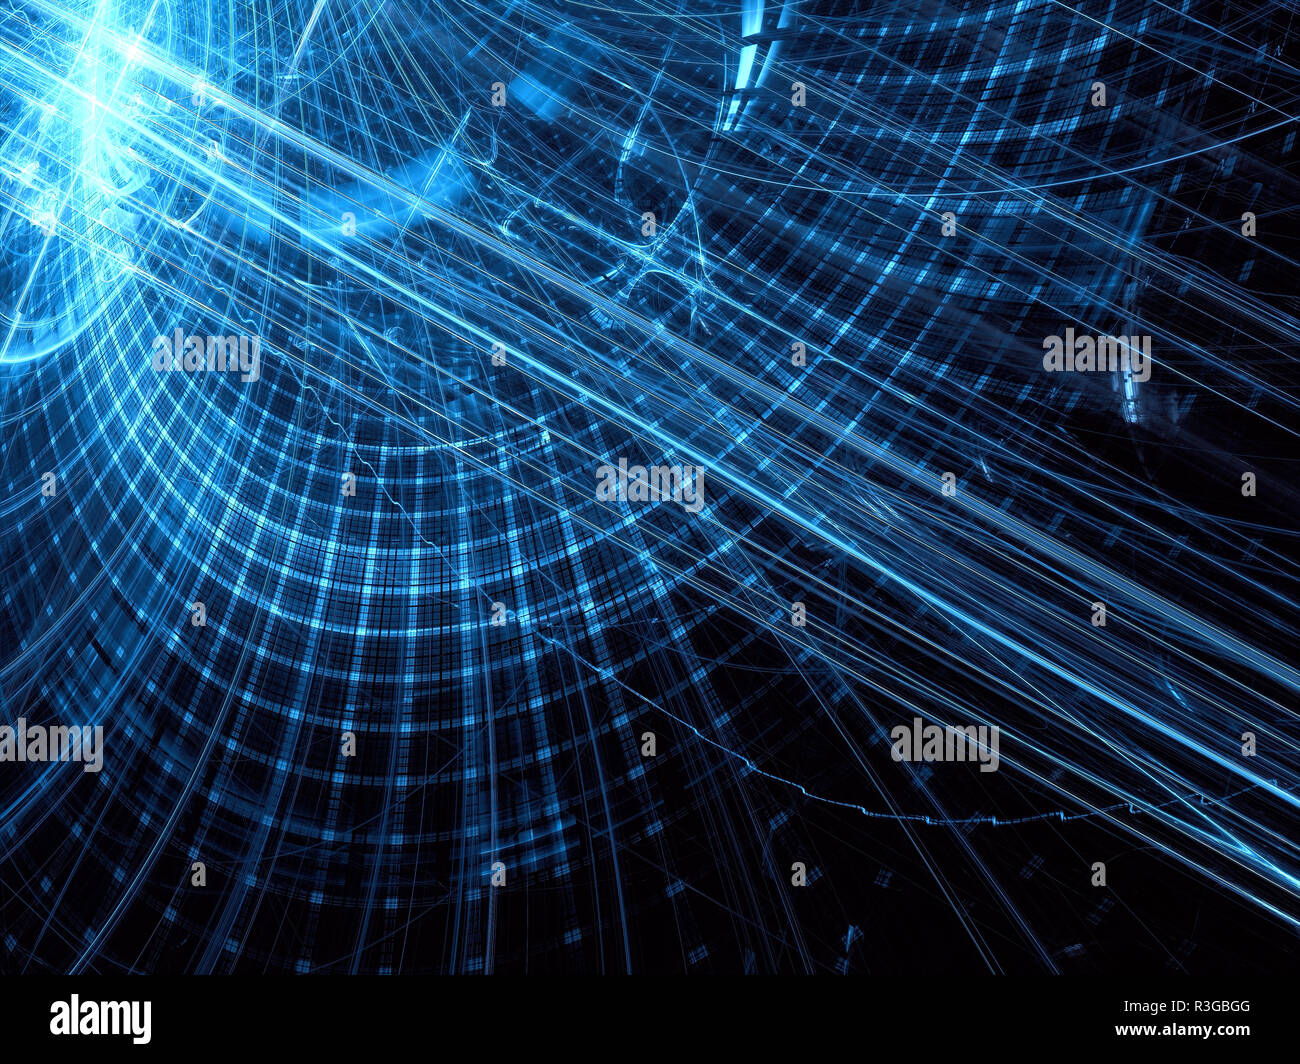 Abstract Technology Background With Light Effect: Tech Background Stock Photos & Tech Background Stock